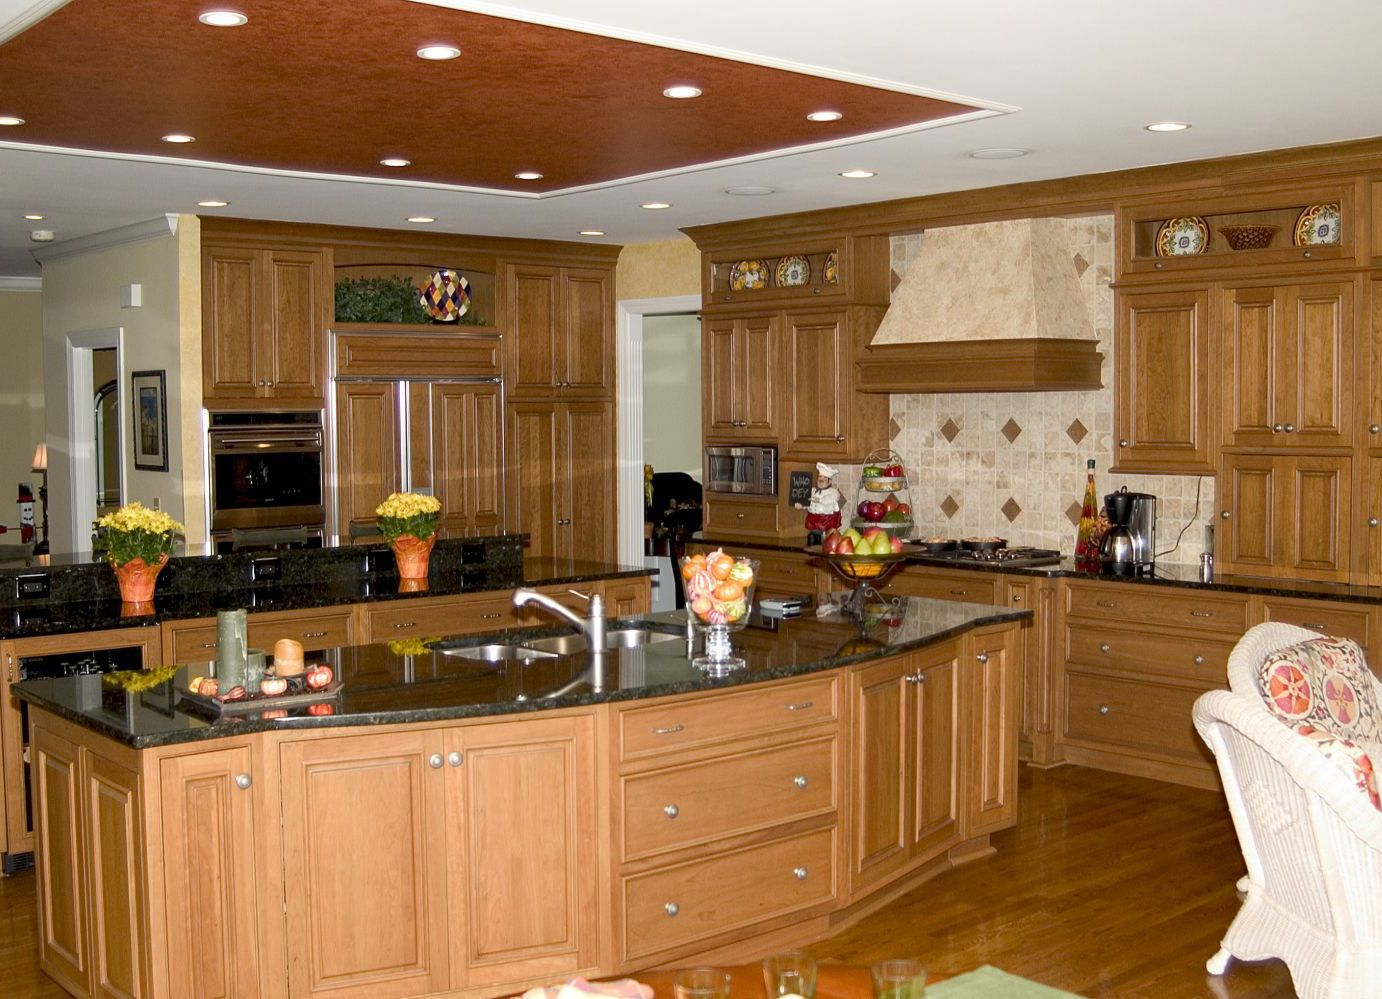 3 Spring Remodeling Ideas From The Expert Contractors At Remodel Cincinnati Remodel Cincinnati